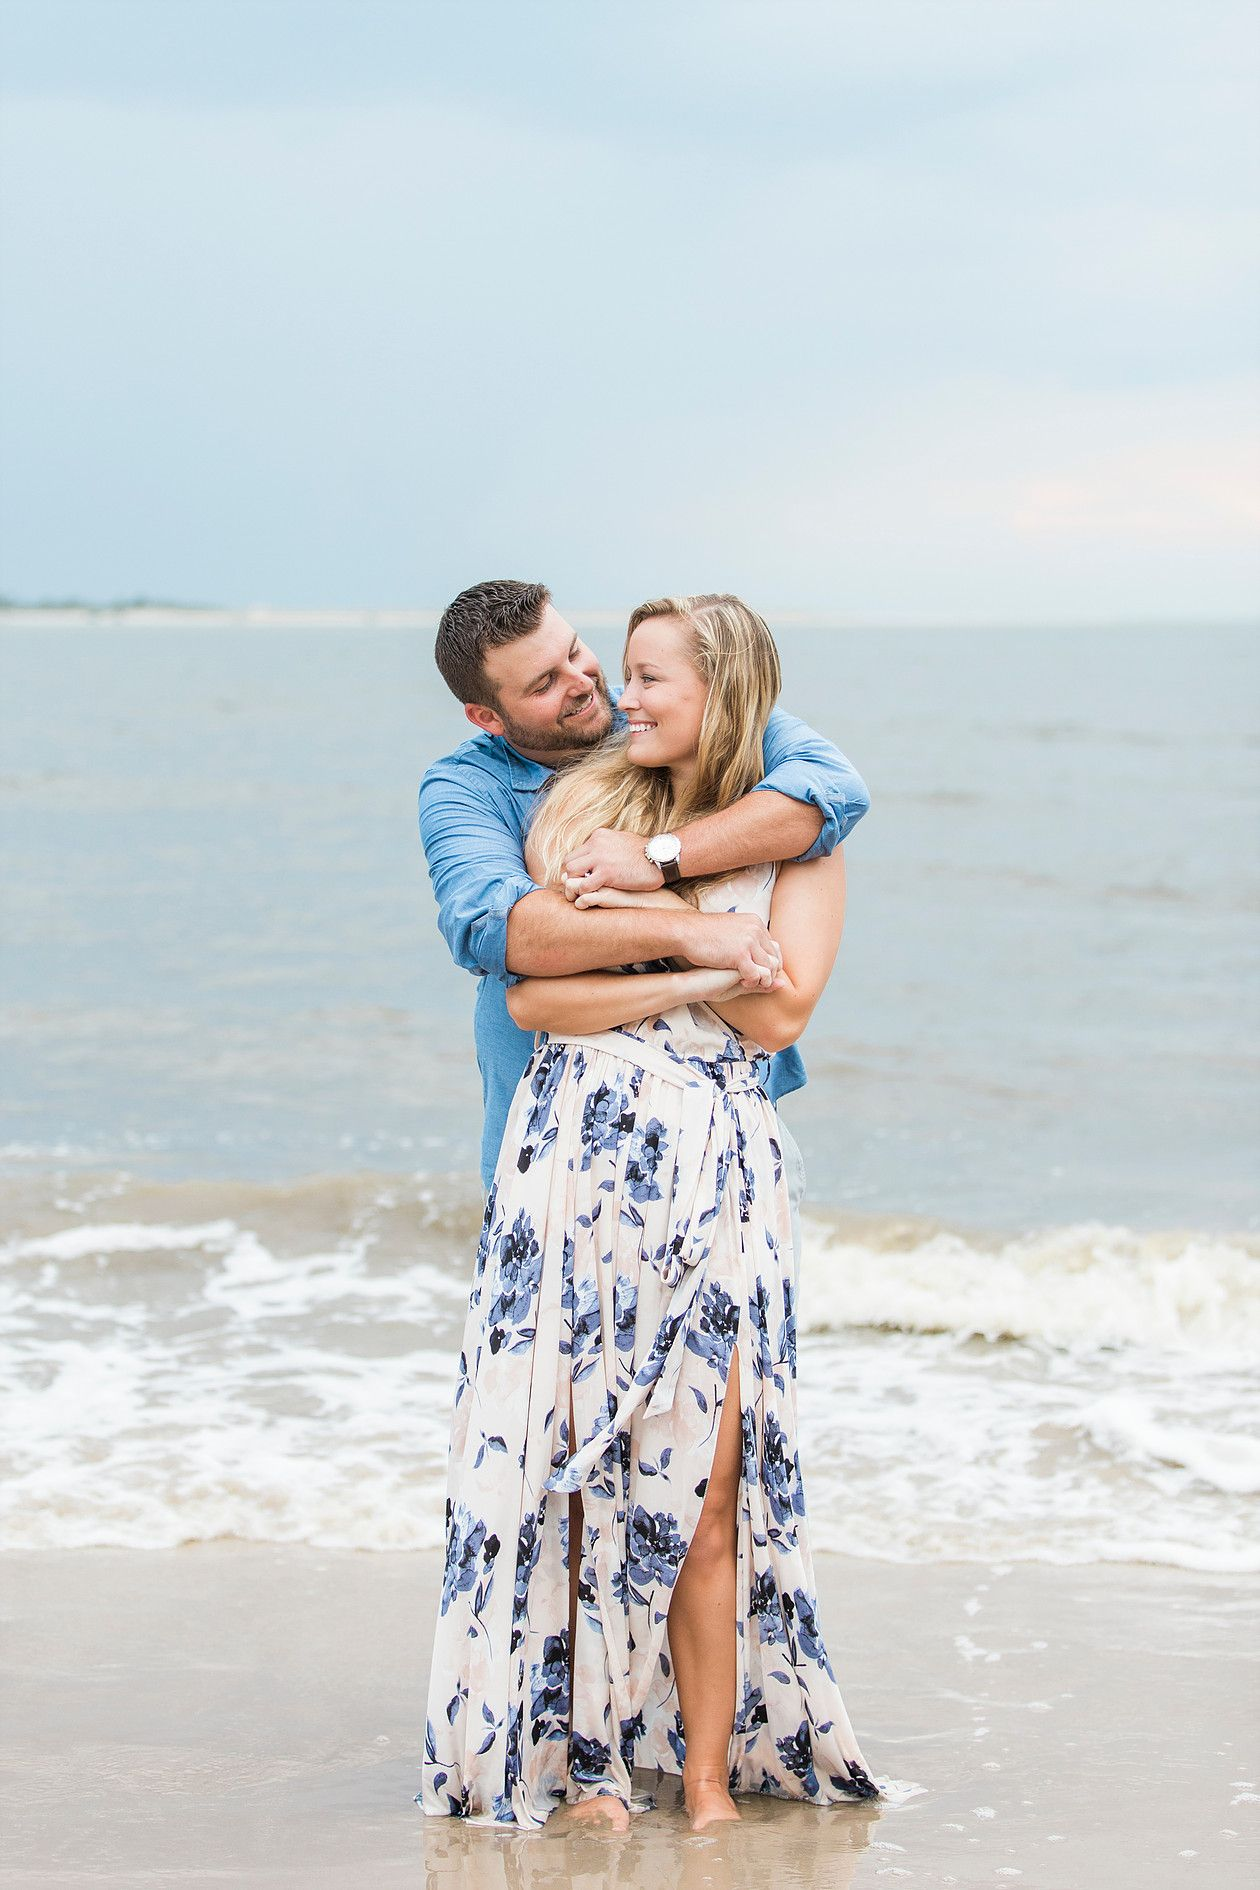 Watch - Photos engagement what to wear beach video